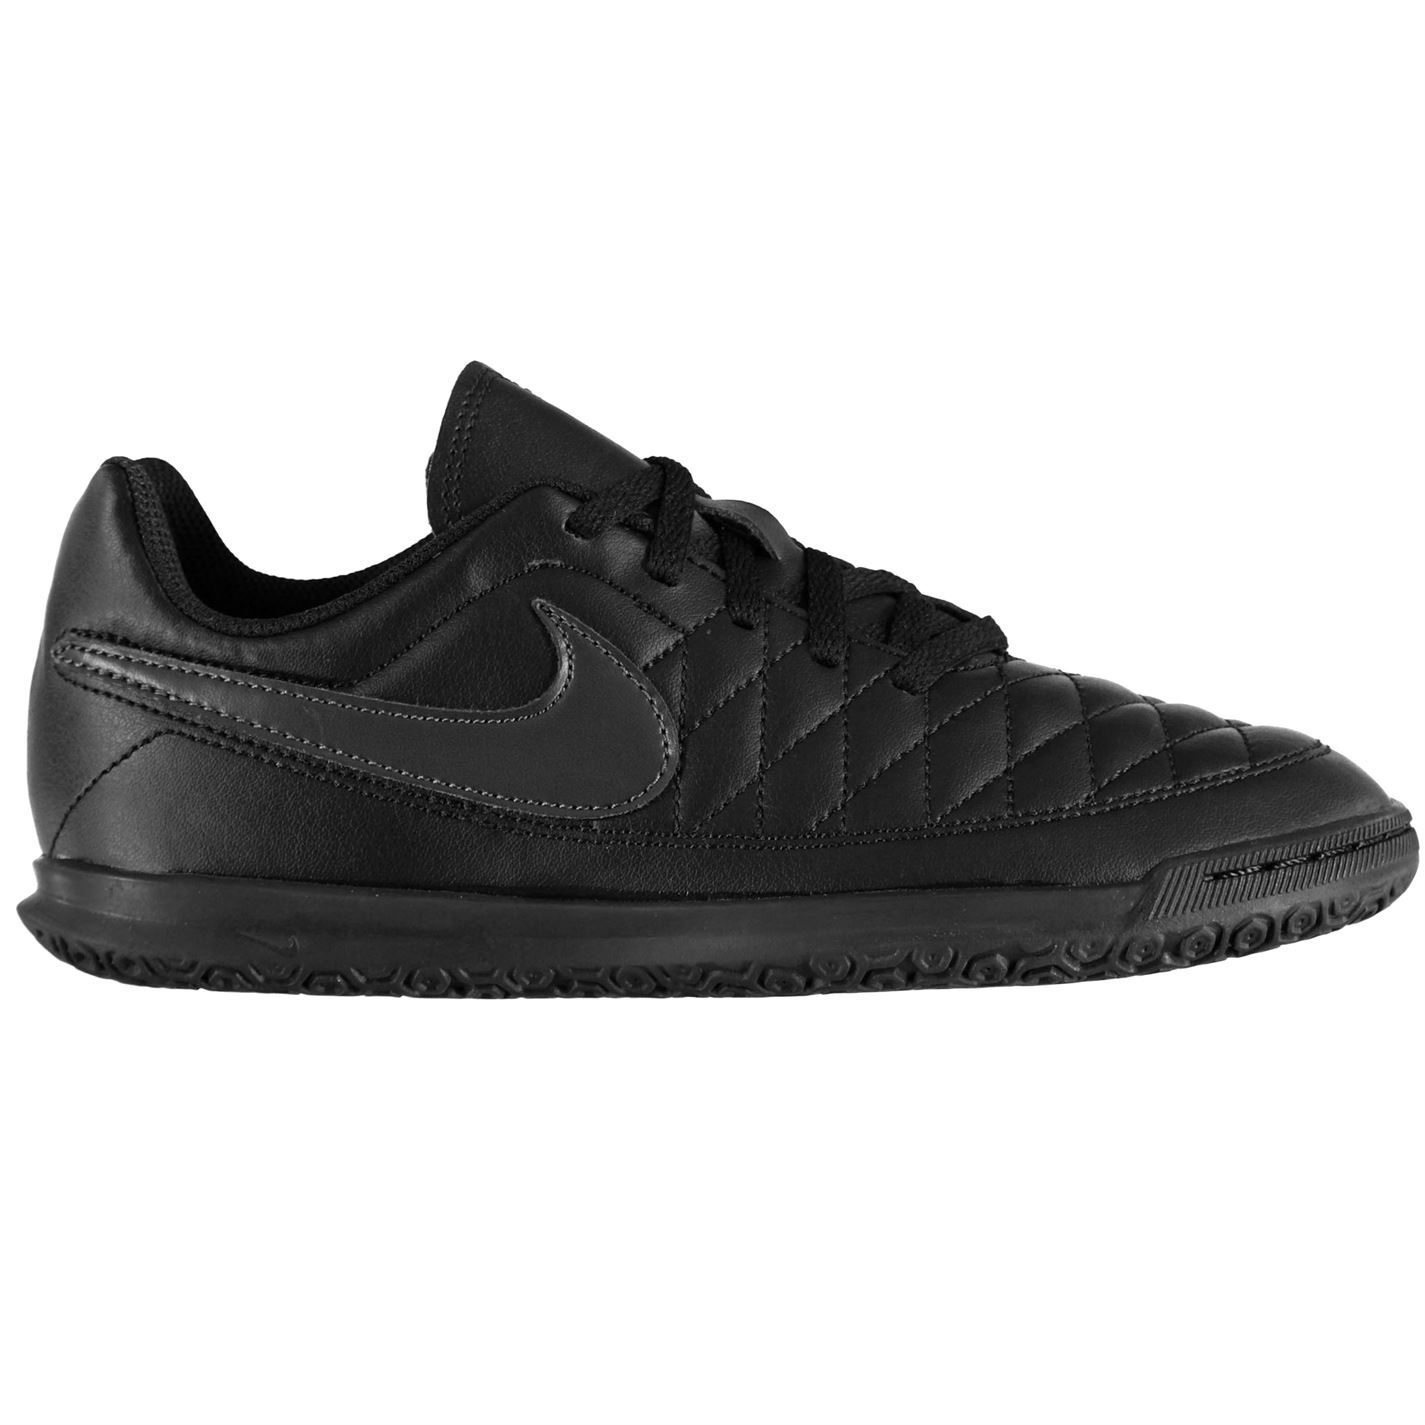 Nike-majestry-Indoor-Court-Football-formateurs-juniors-Football-Baskets-Chaussures miniature 5